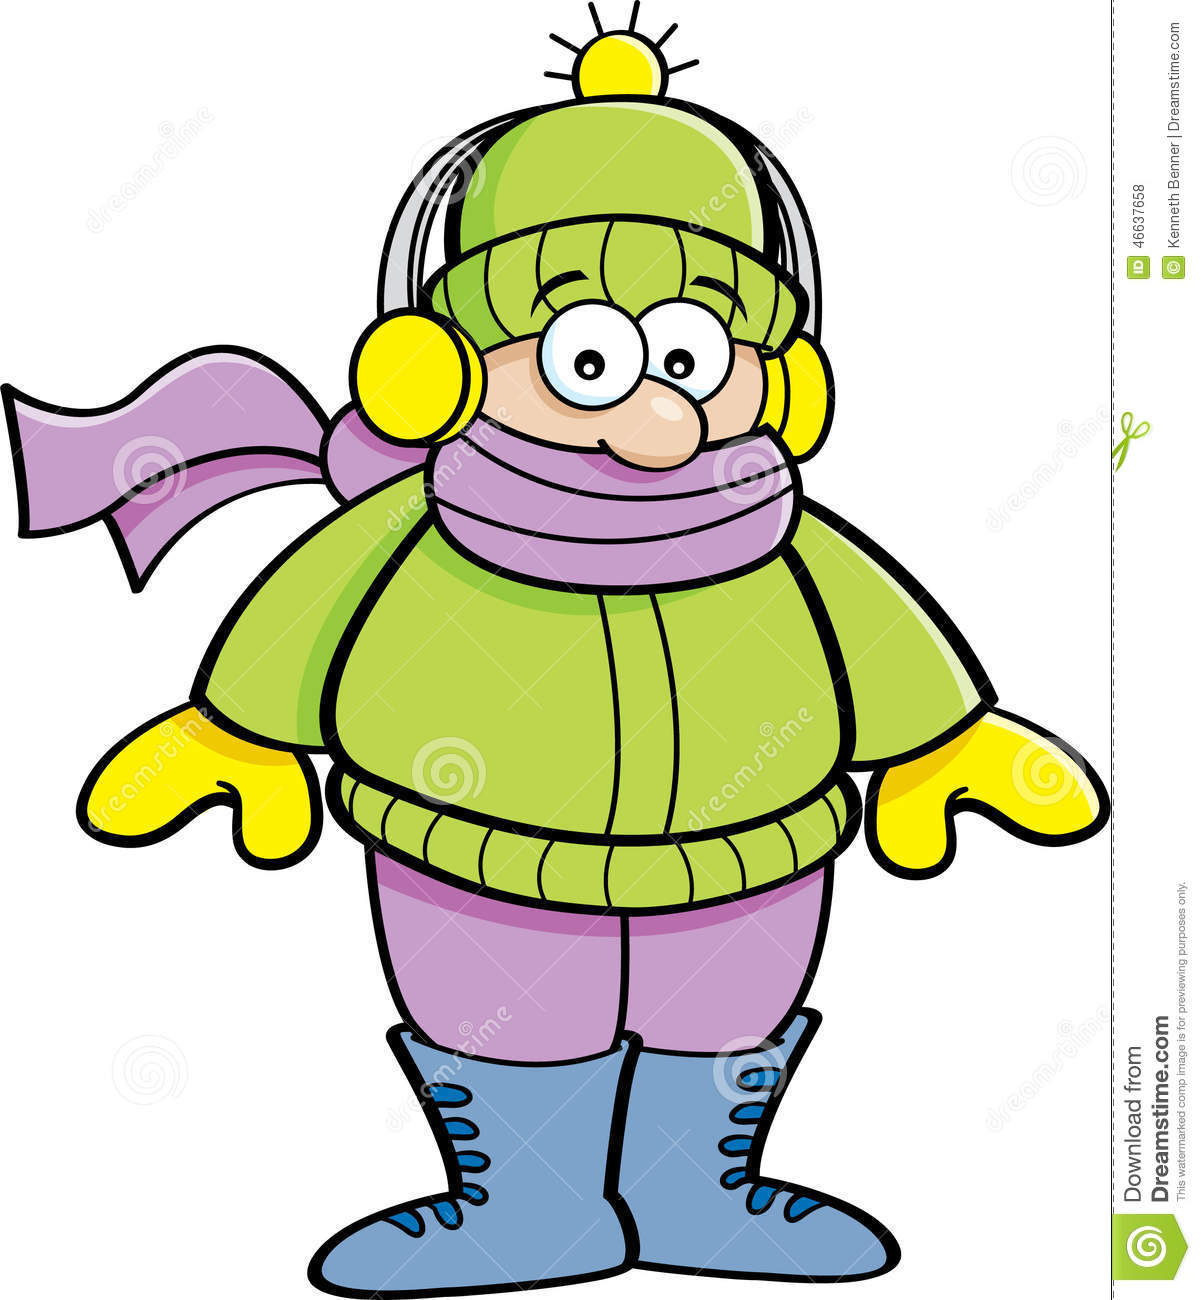 cartoon kid wearing winter clothing stock vector illustration of rh dreamstime com winter clothes clipart free winter clothing clip art free download